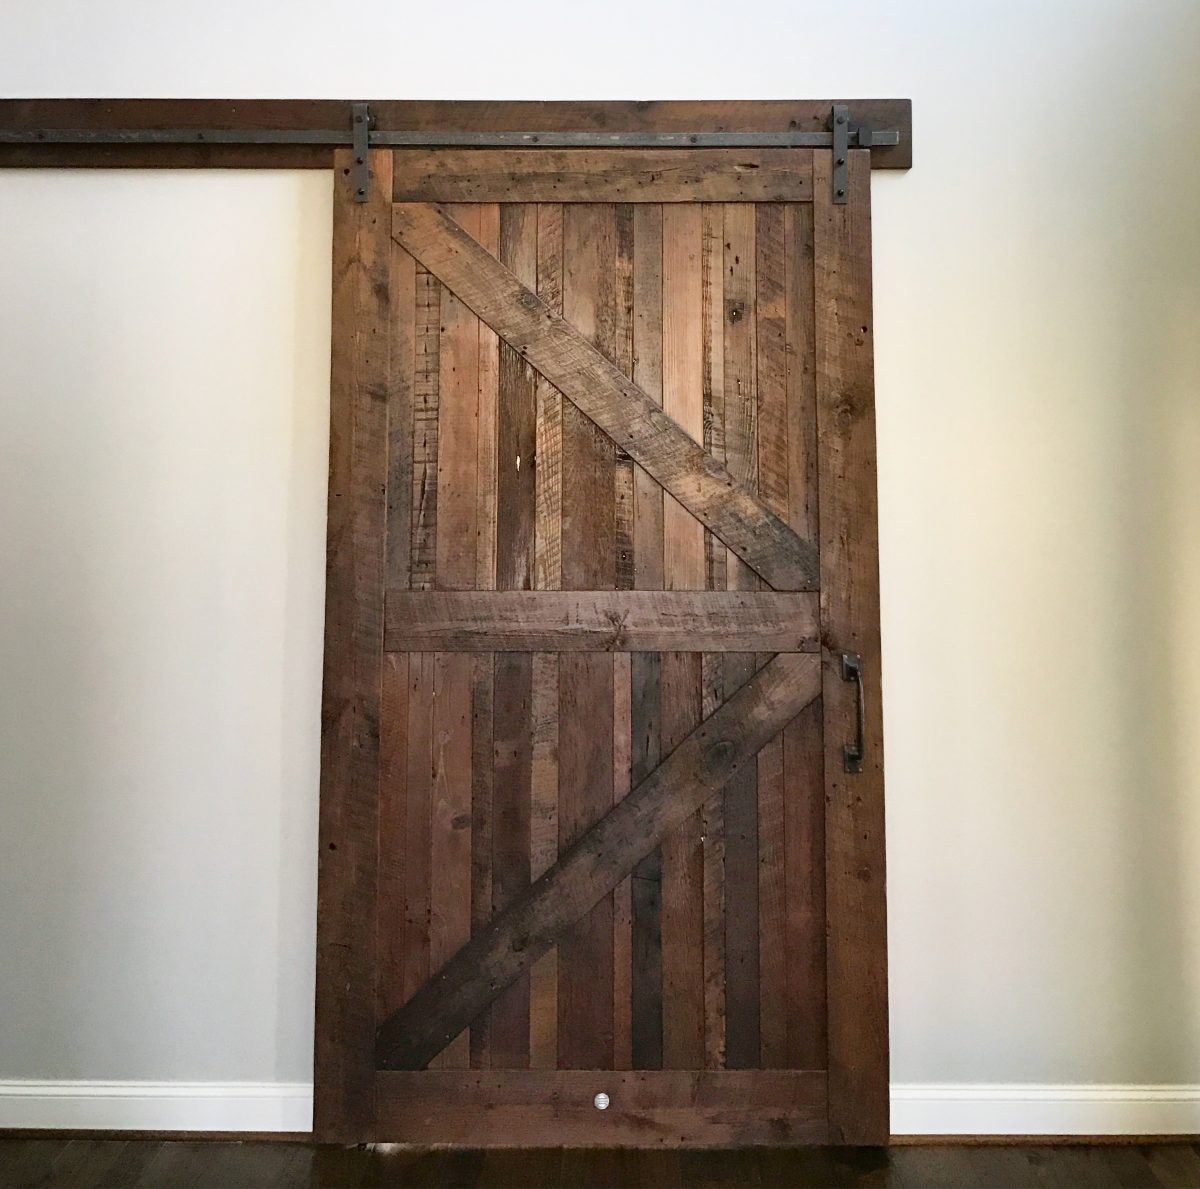 door doors great reclaimed u bring using into a reclaimedcustom barns s is custom to wood format new vintage blog material barn way the reclaimedu